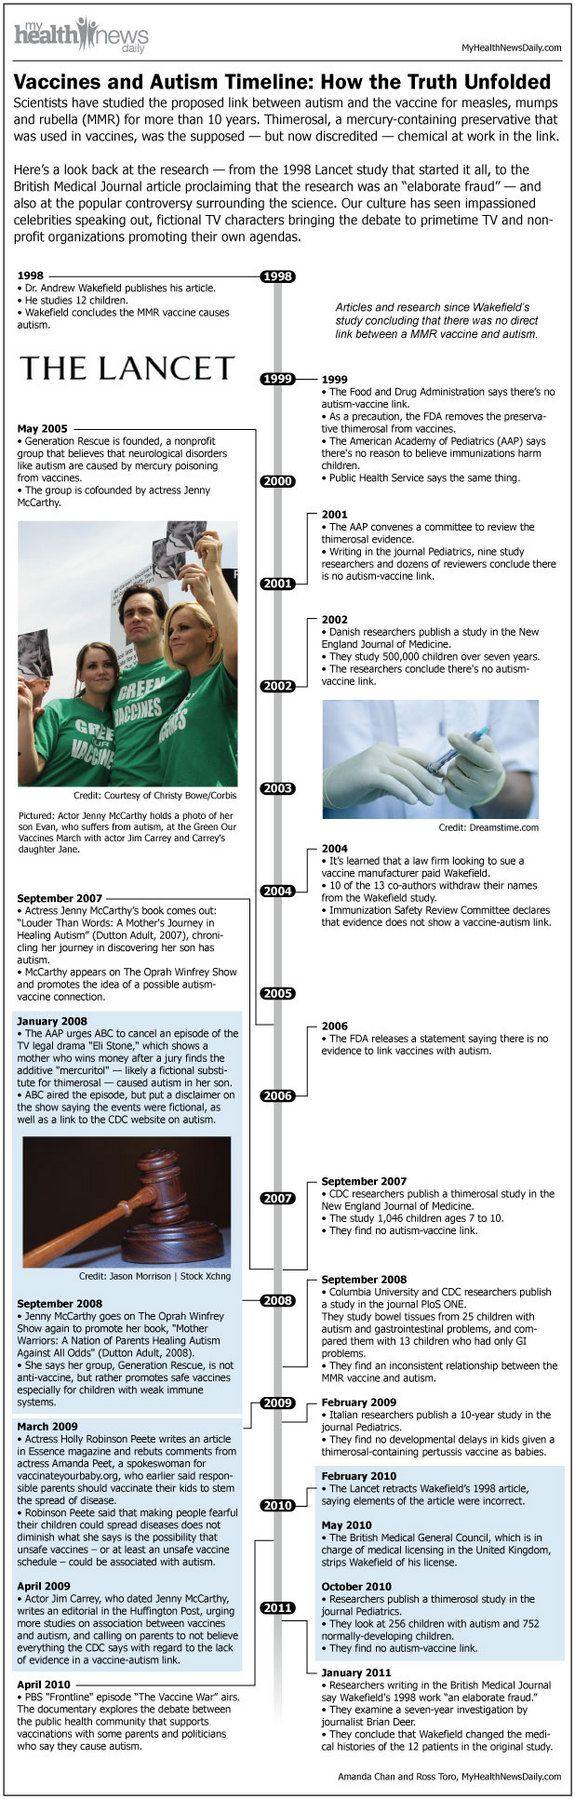 Vaccines and Autism Timeline: How the Truth Unfolded. There is NO link between vaccination and autism - this infographic gives the timeline, from the publication of the now-retracted fraudulent study by ex-Dr Wakefield which started this whole issue rolling.